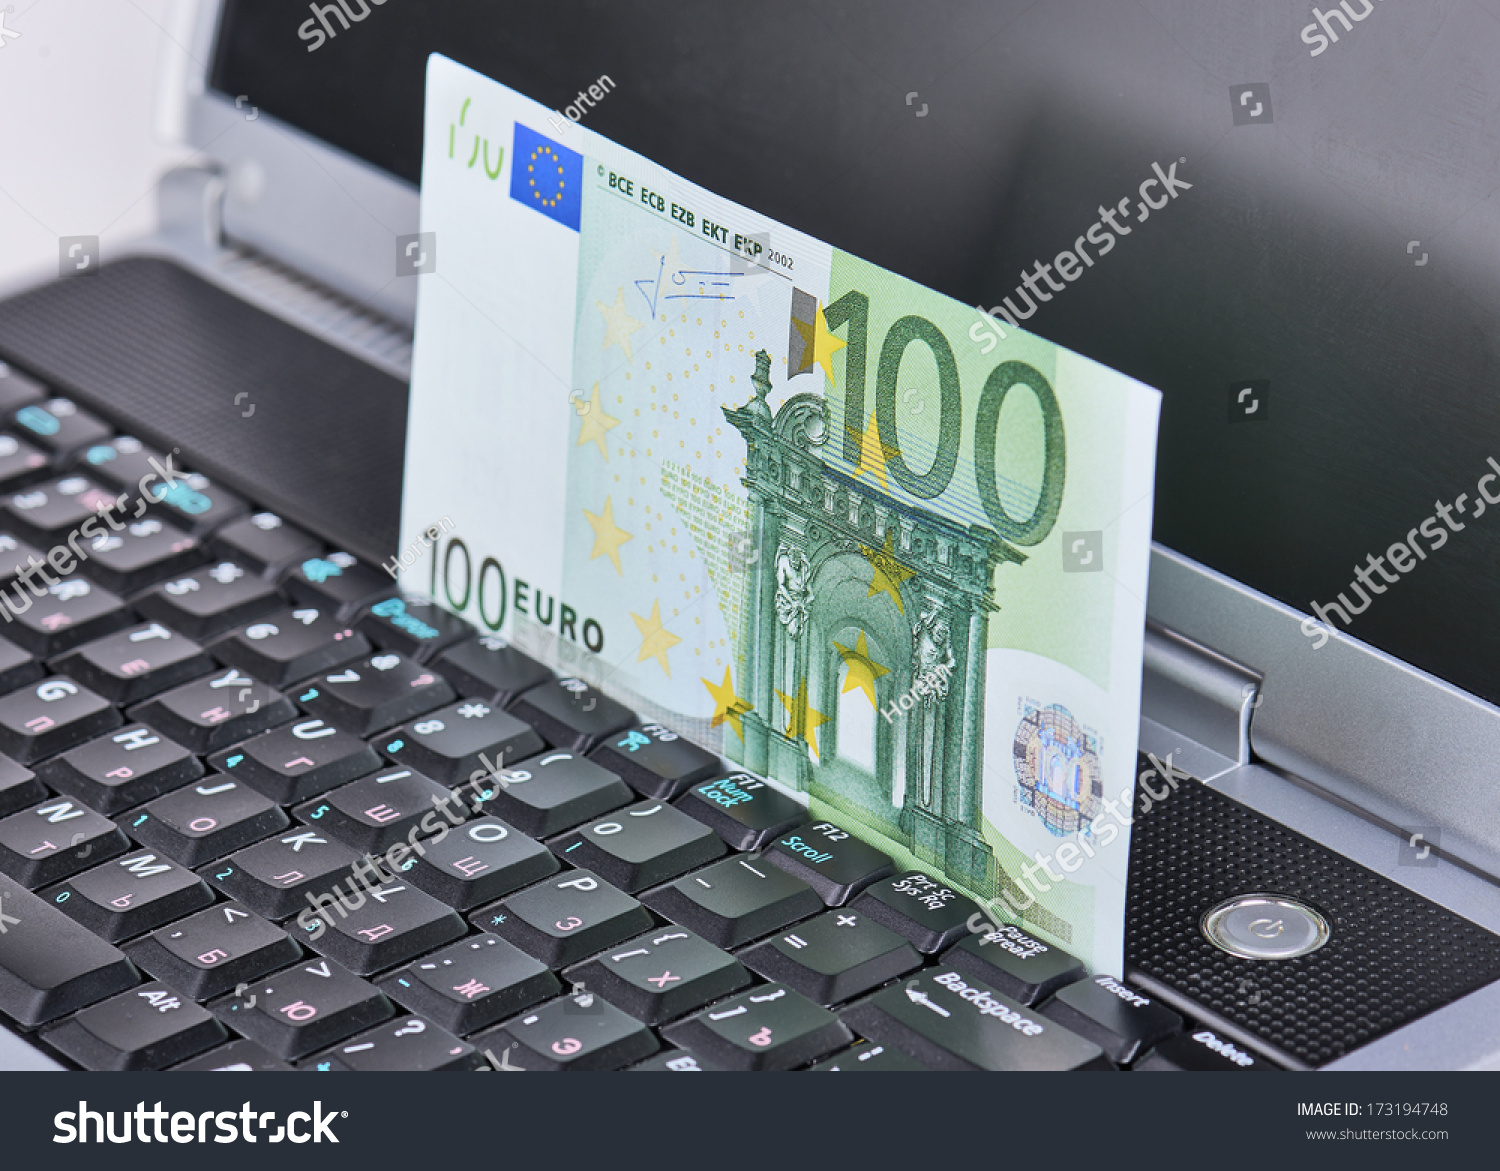 Laptop Orten 100 Euro Banknote Displayed Motion On Stock Photo Edit Now